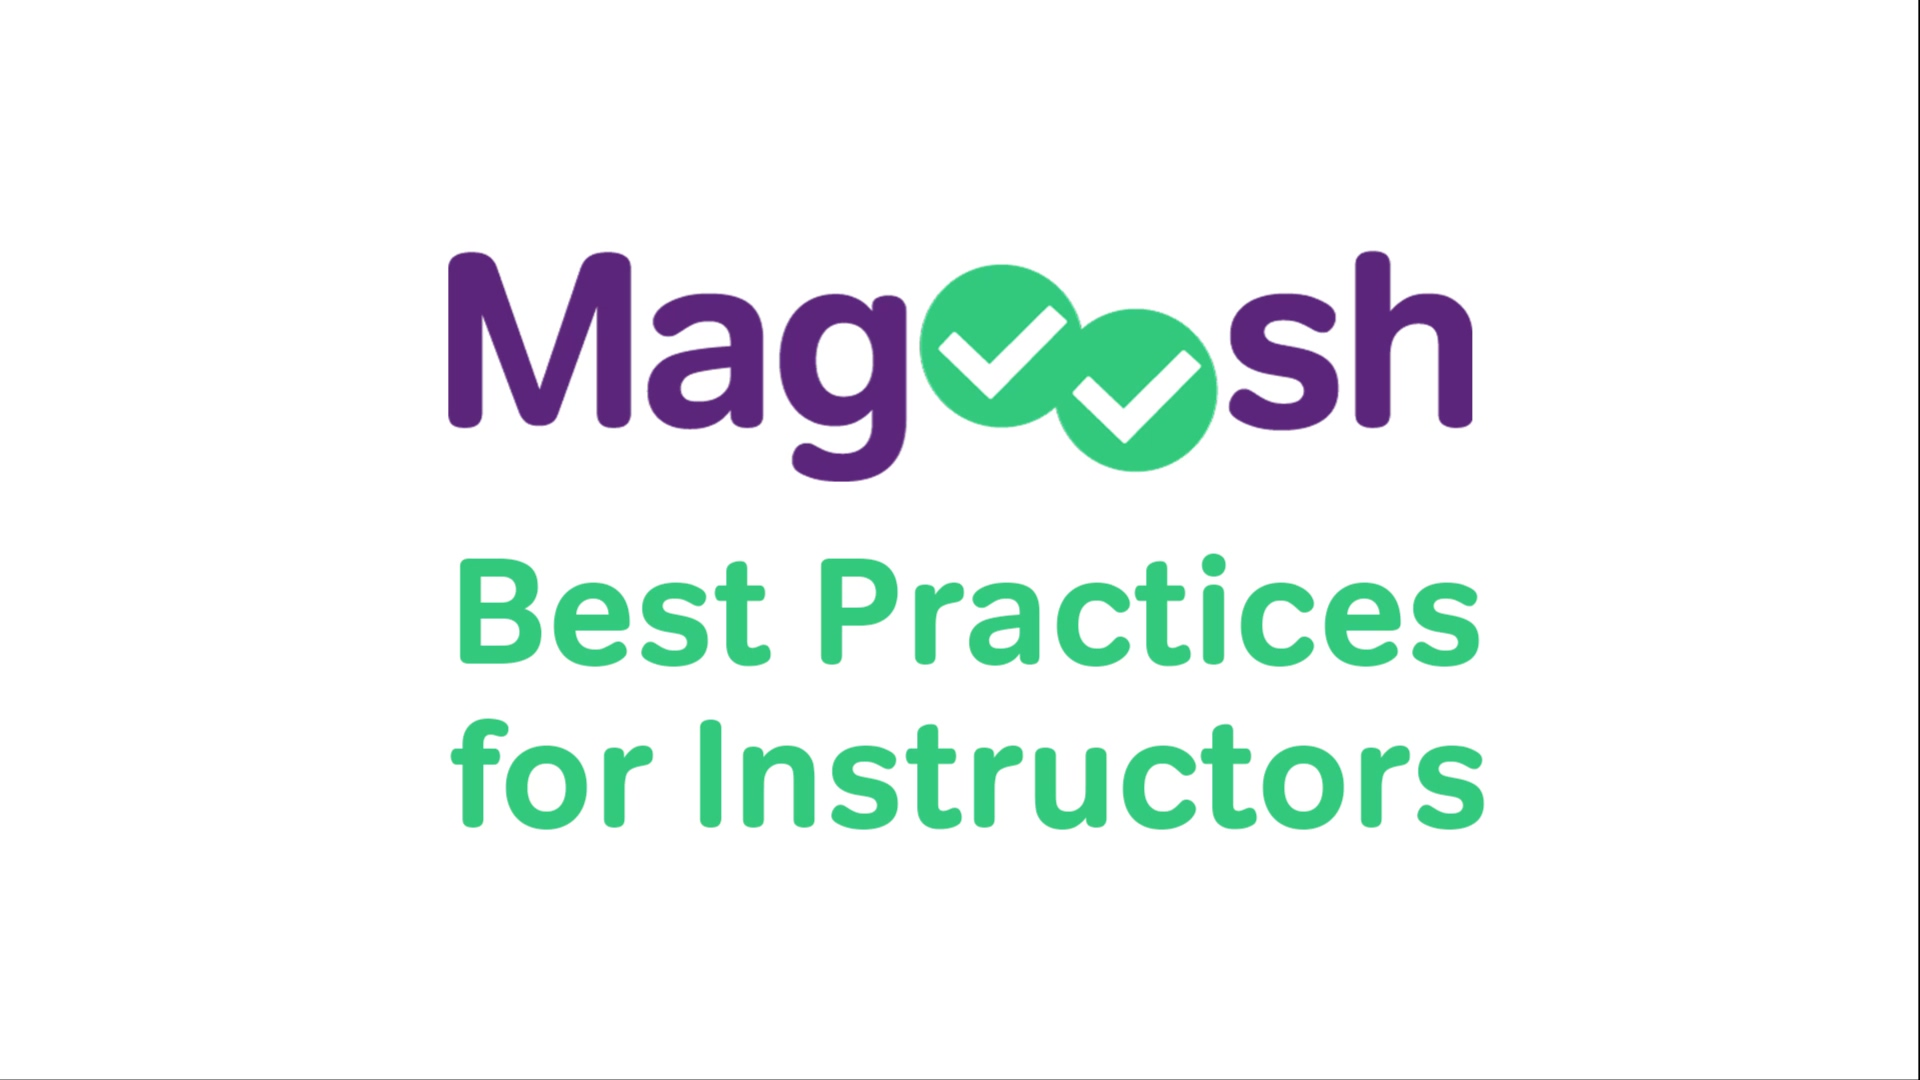 Magoosh Best Practices for Instructors